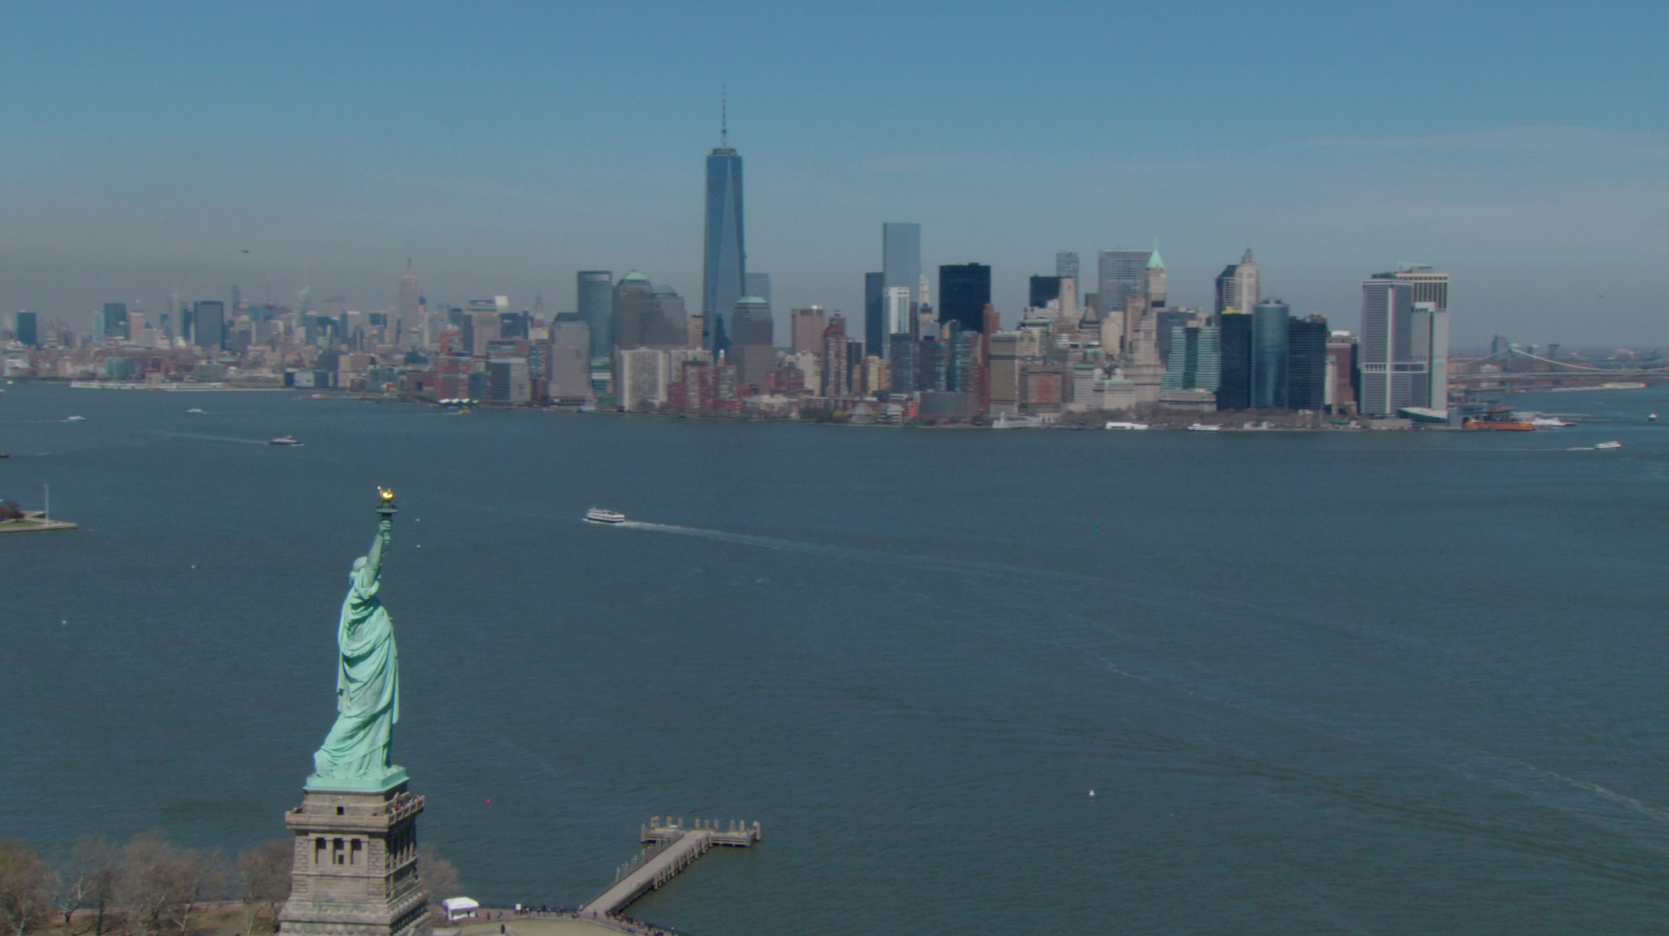 Free 4K aerial stock video of the Statue of Liberty and NYC Skyline stock footage